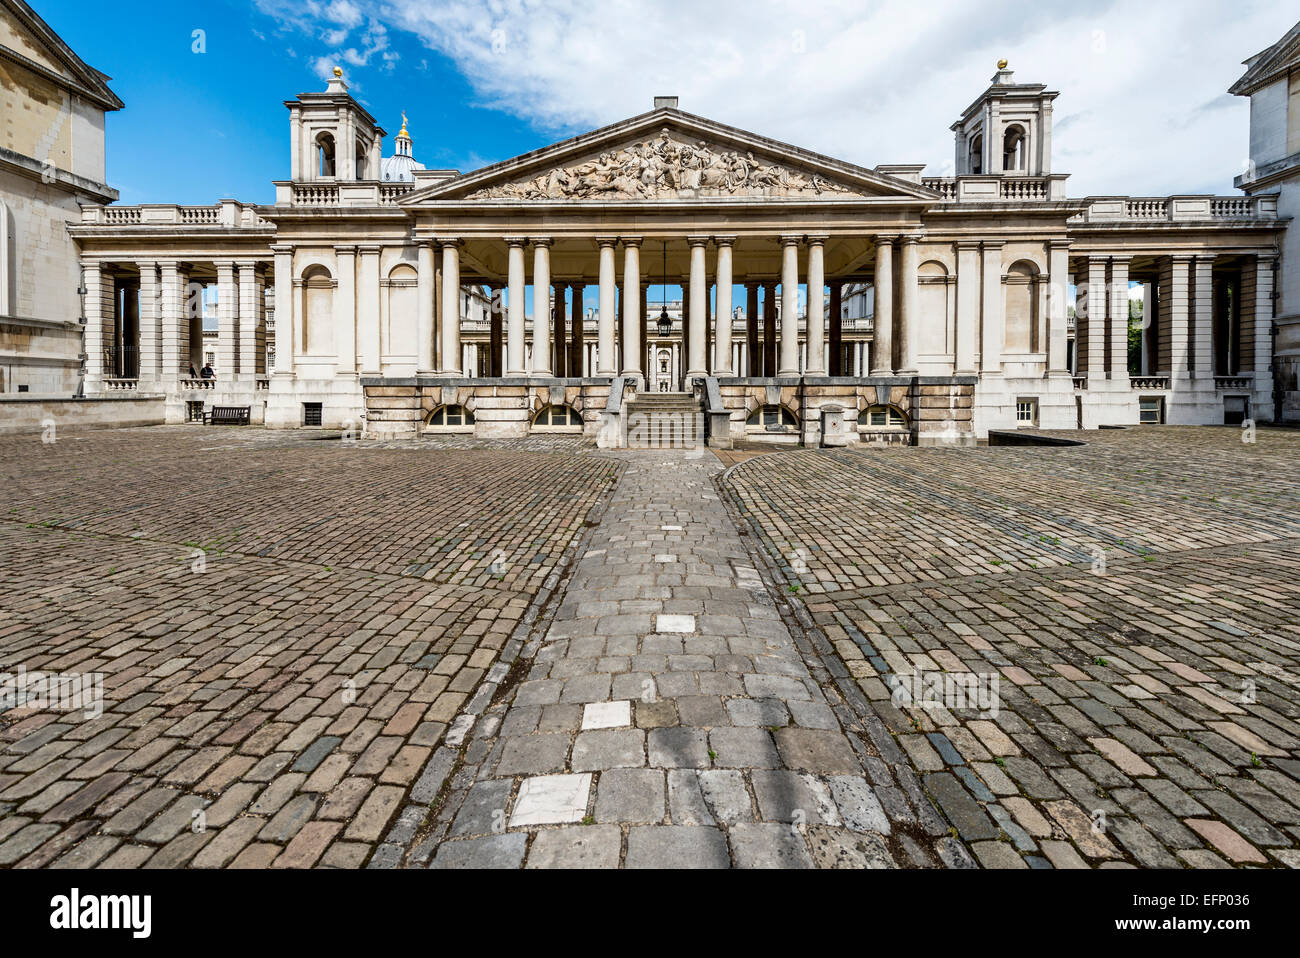 The Nelson pediment at the Old Royal Naval College in Greenwich London in the King William Court - Stock Image